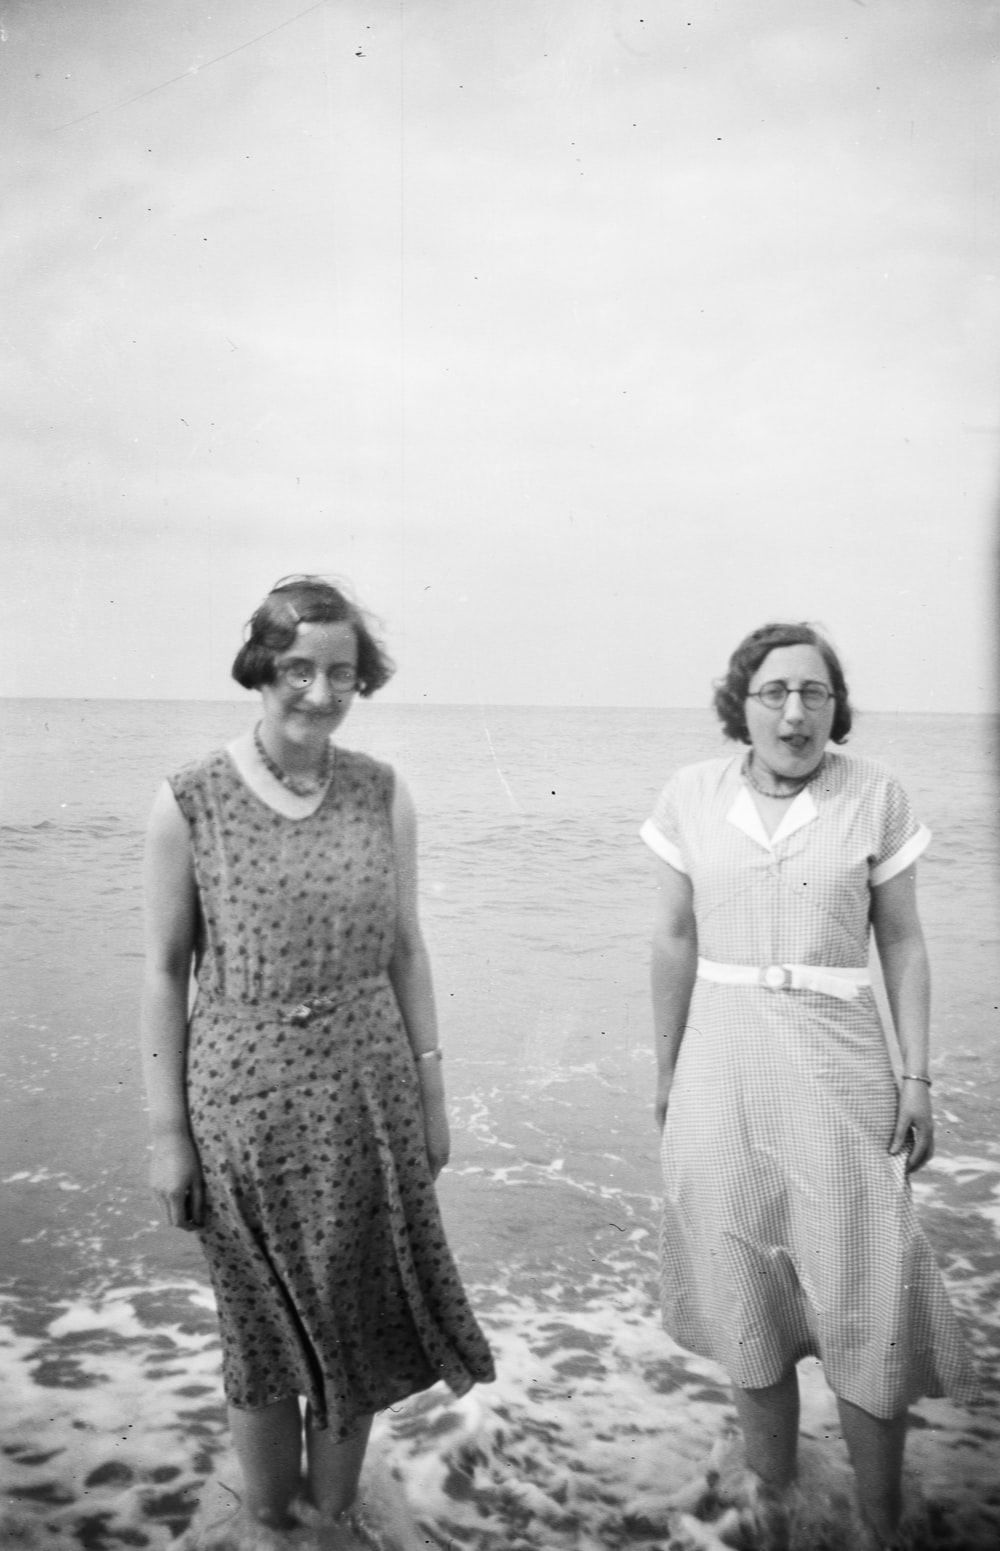 grayscale photography of two women standing in the sea